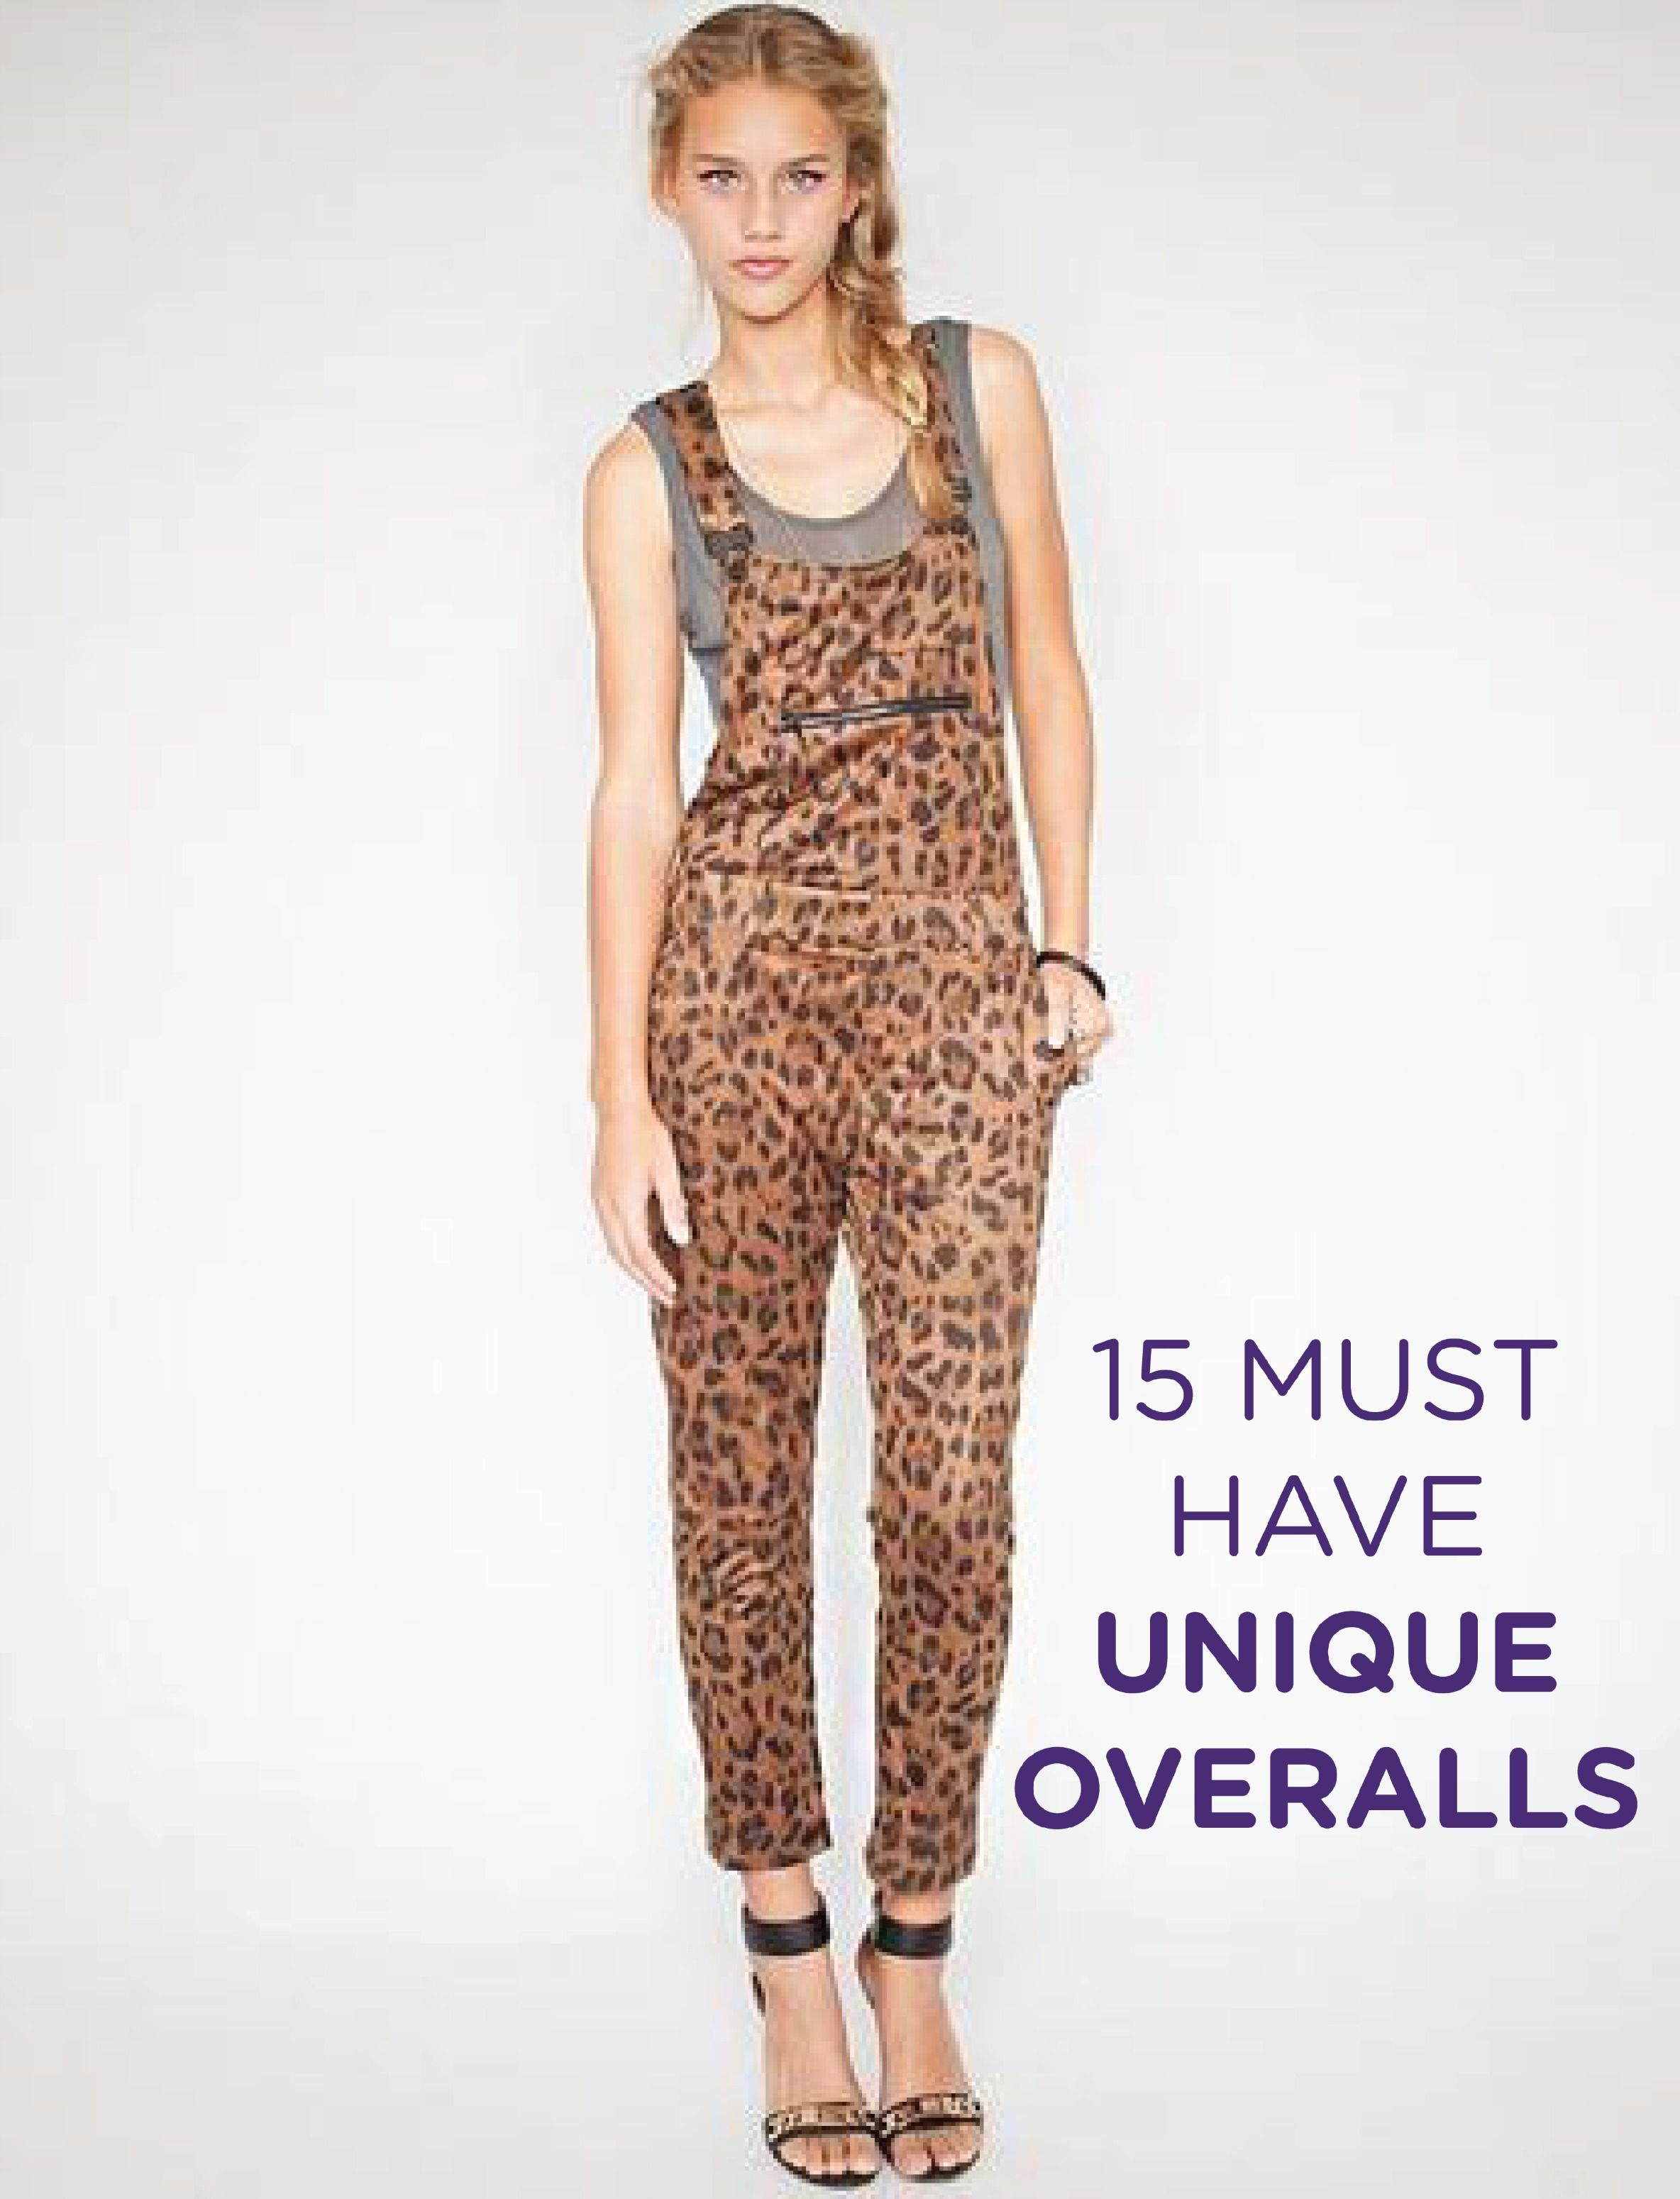 15 Pairs of Truly Unique Overalls to Rock ThisSpring